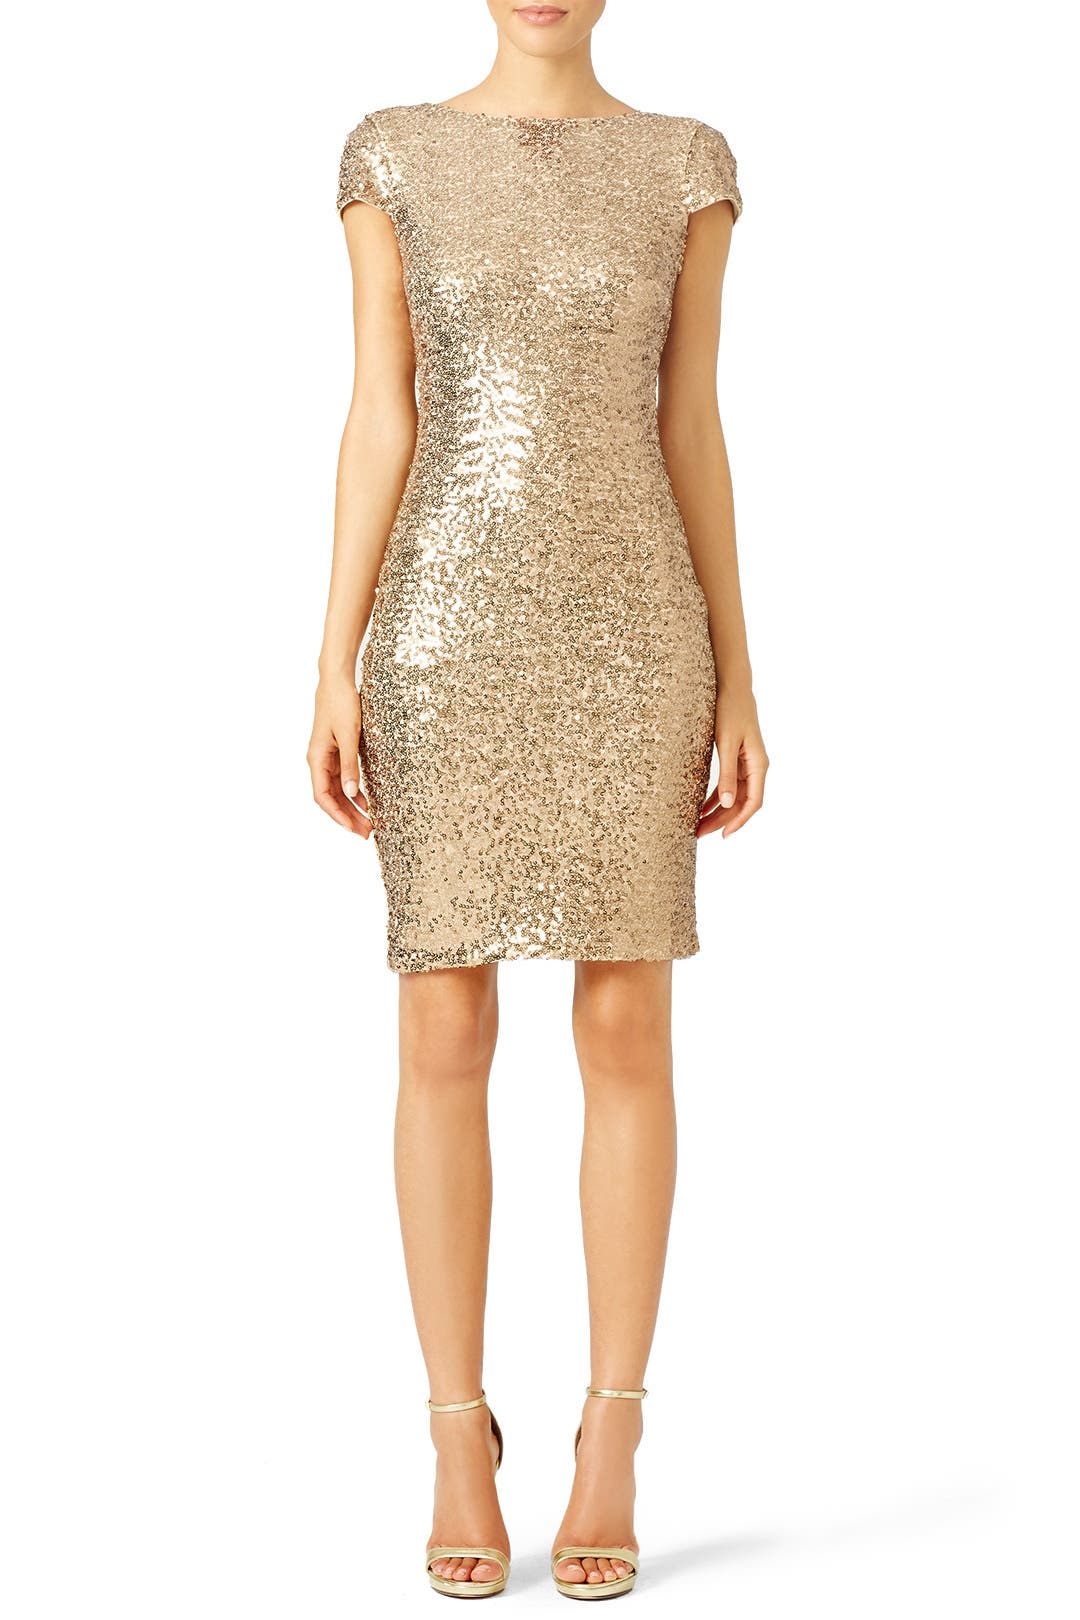 Gold Swank Sequin Sheath By Badgley Mischka For 60 75